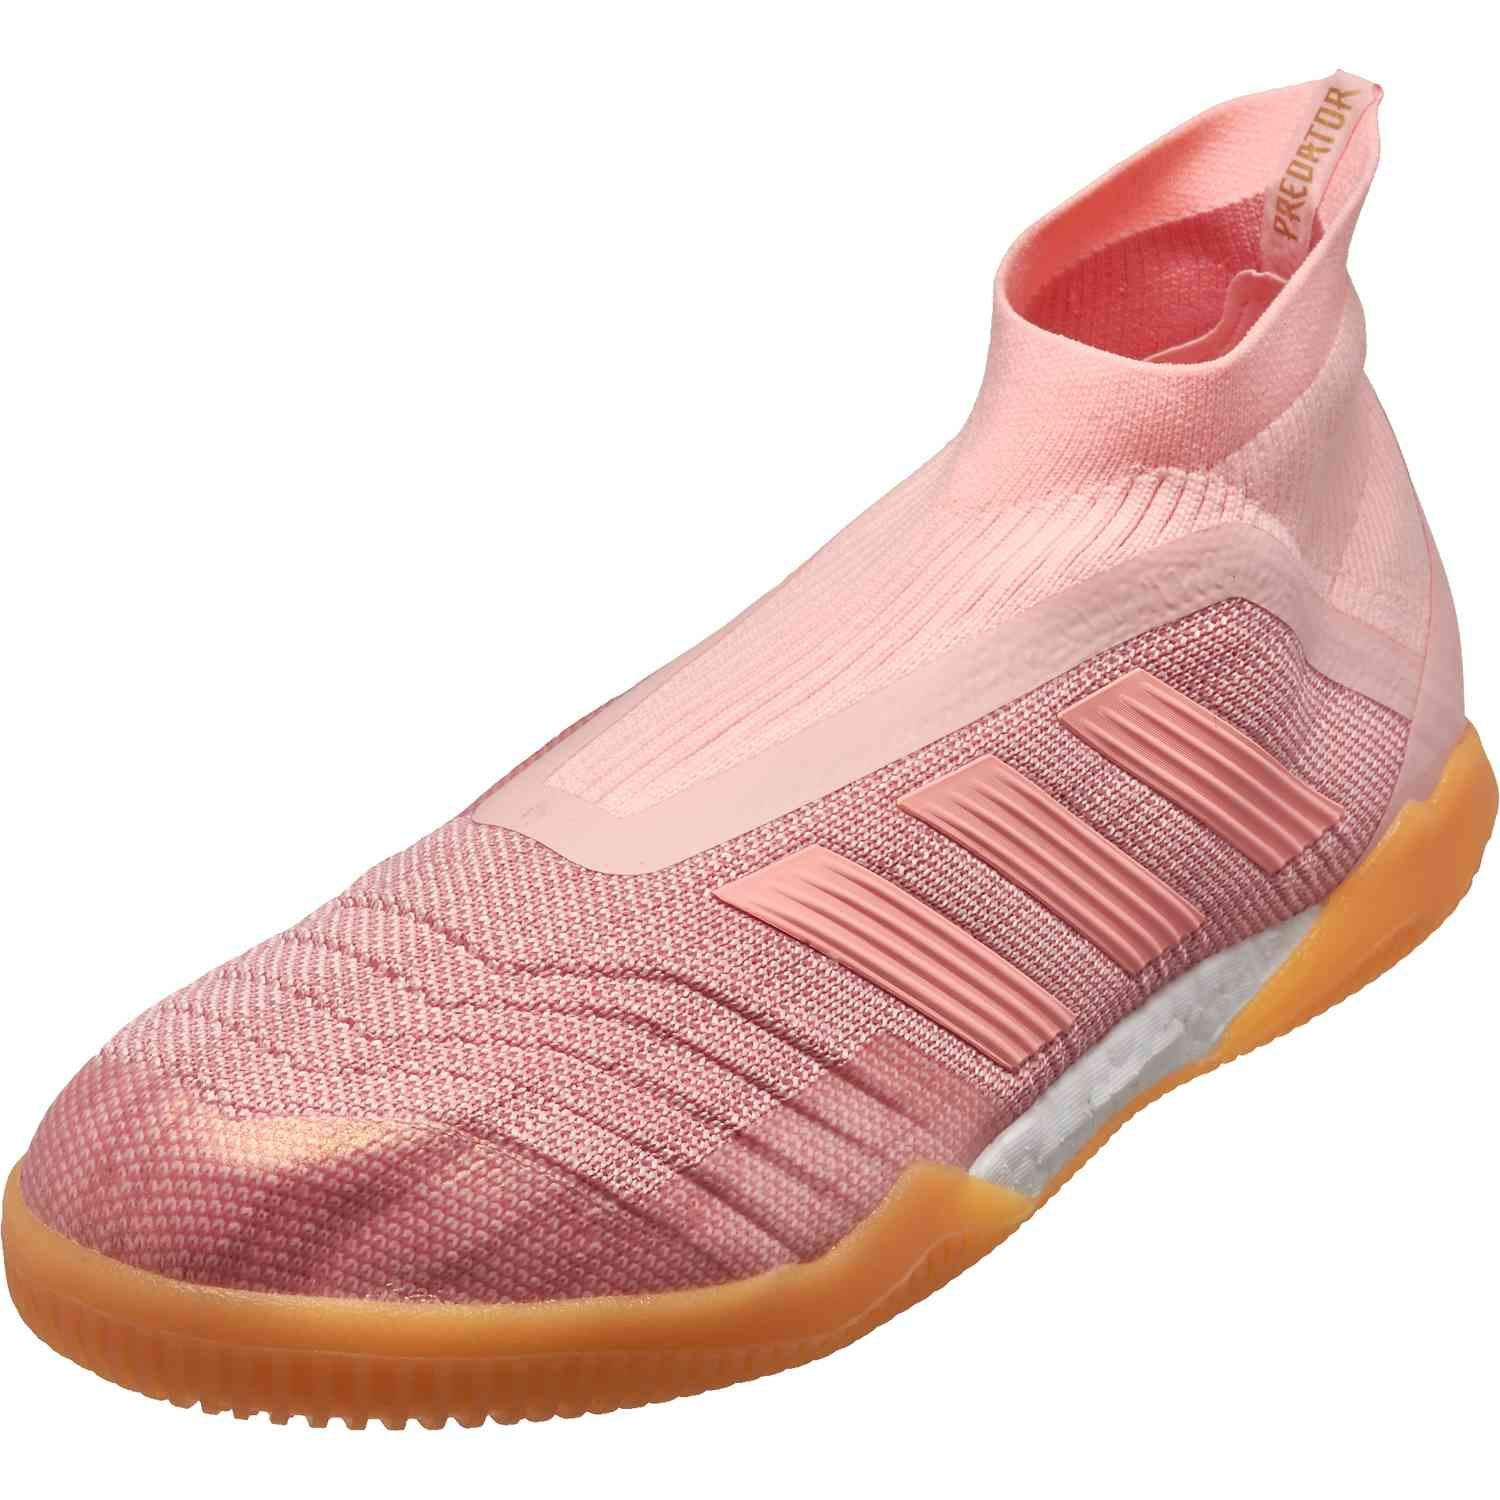 cab48d691 Spectral Mode pack adidas Predator Tango 18+ indoor soccer shoes. Get these  shoes from SoccerPro.